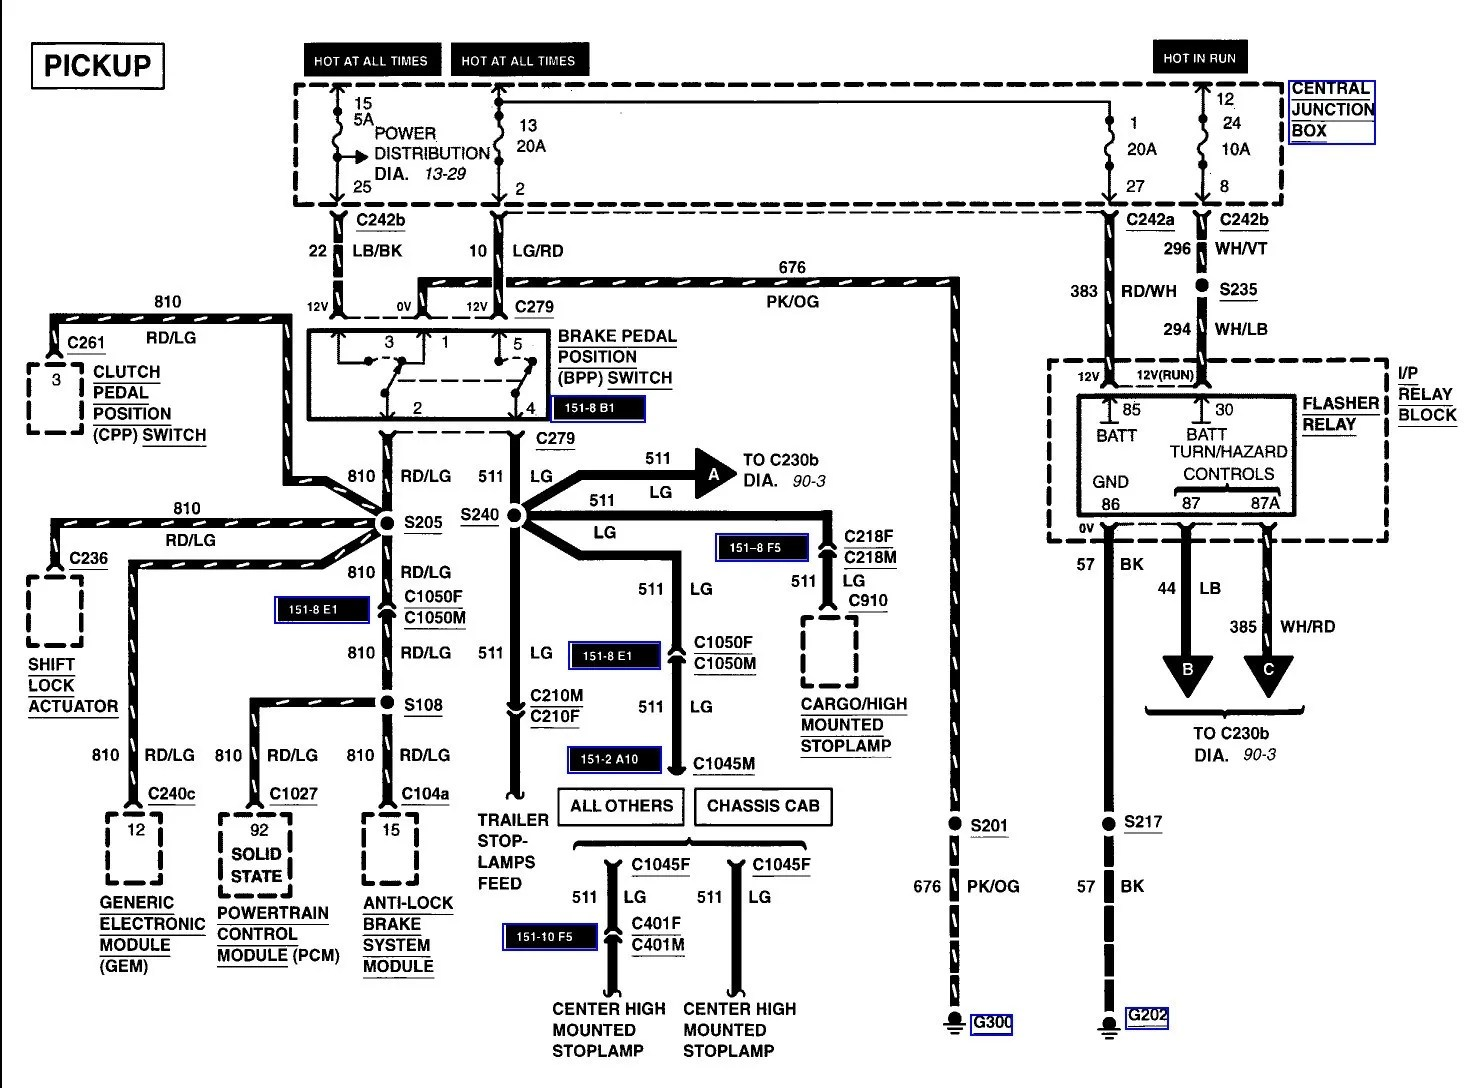 hight resolution of 2004 f350 alternator diagram wiring diagram today 2004 ford f350 6 0 diesel alternator wiring diagram 2004 ford f350 alternator wiring diagram